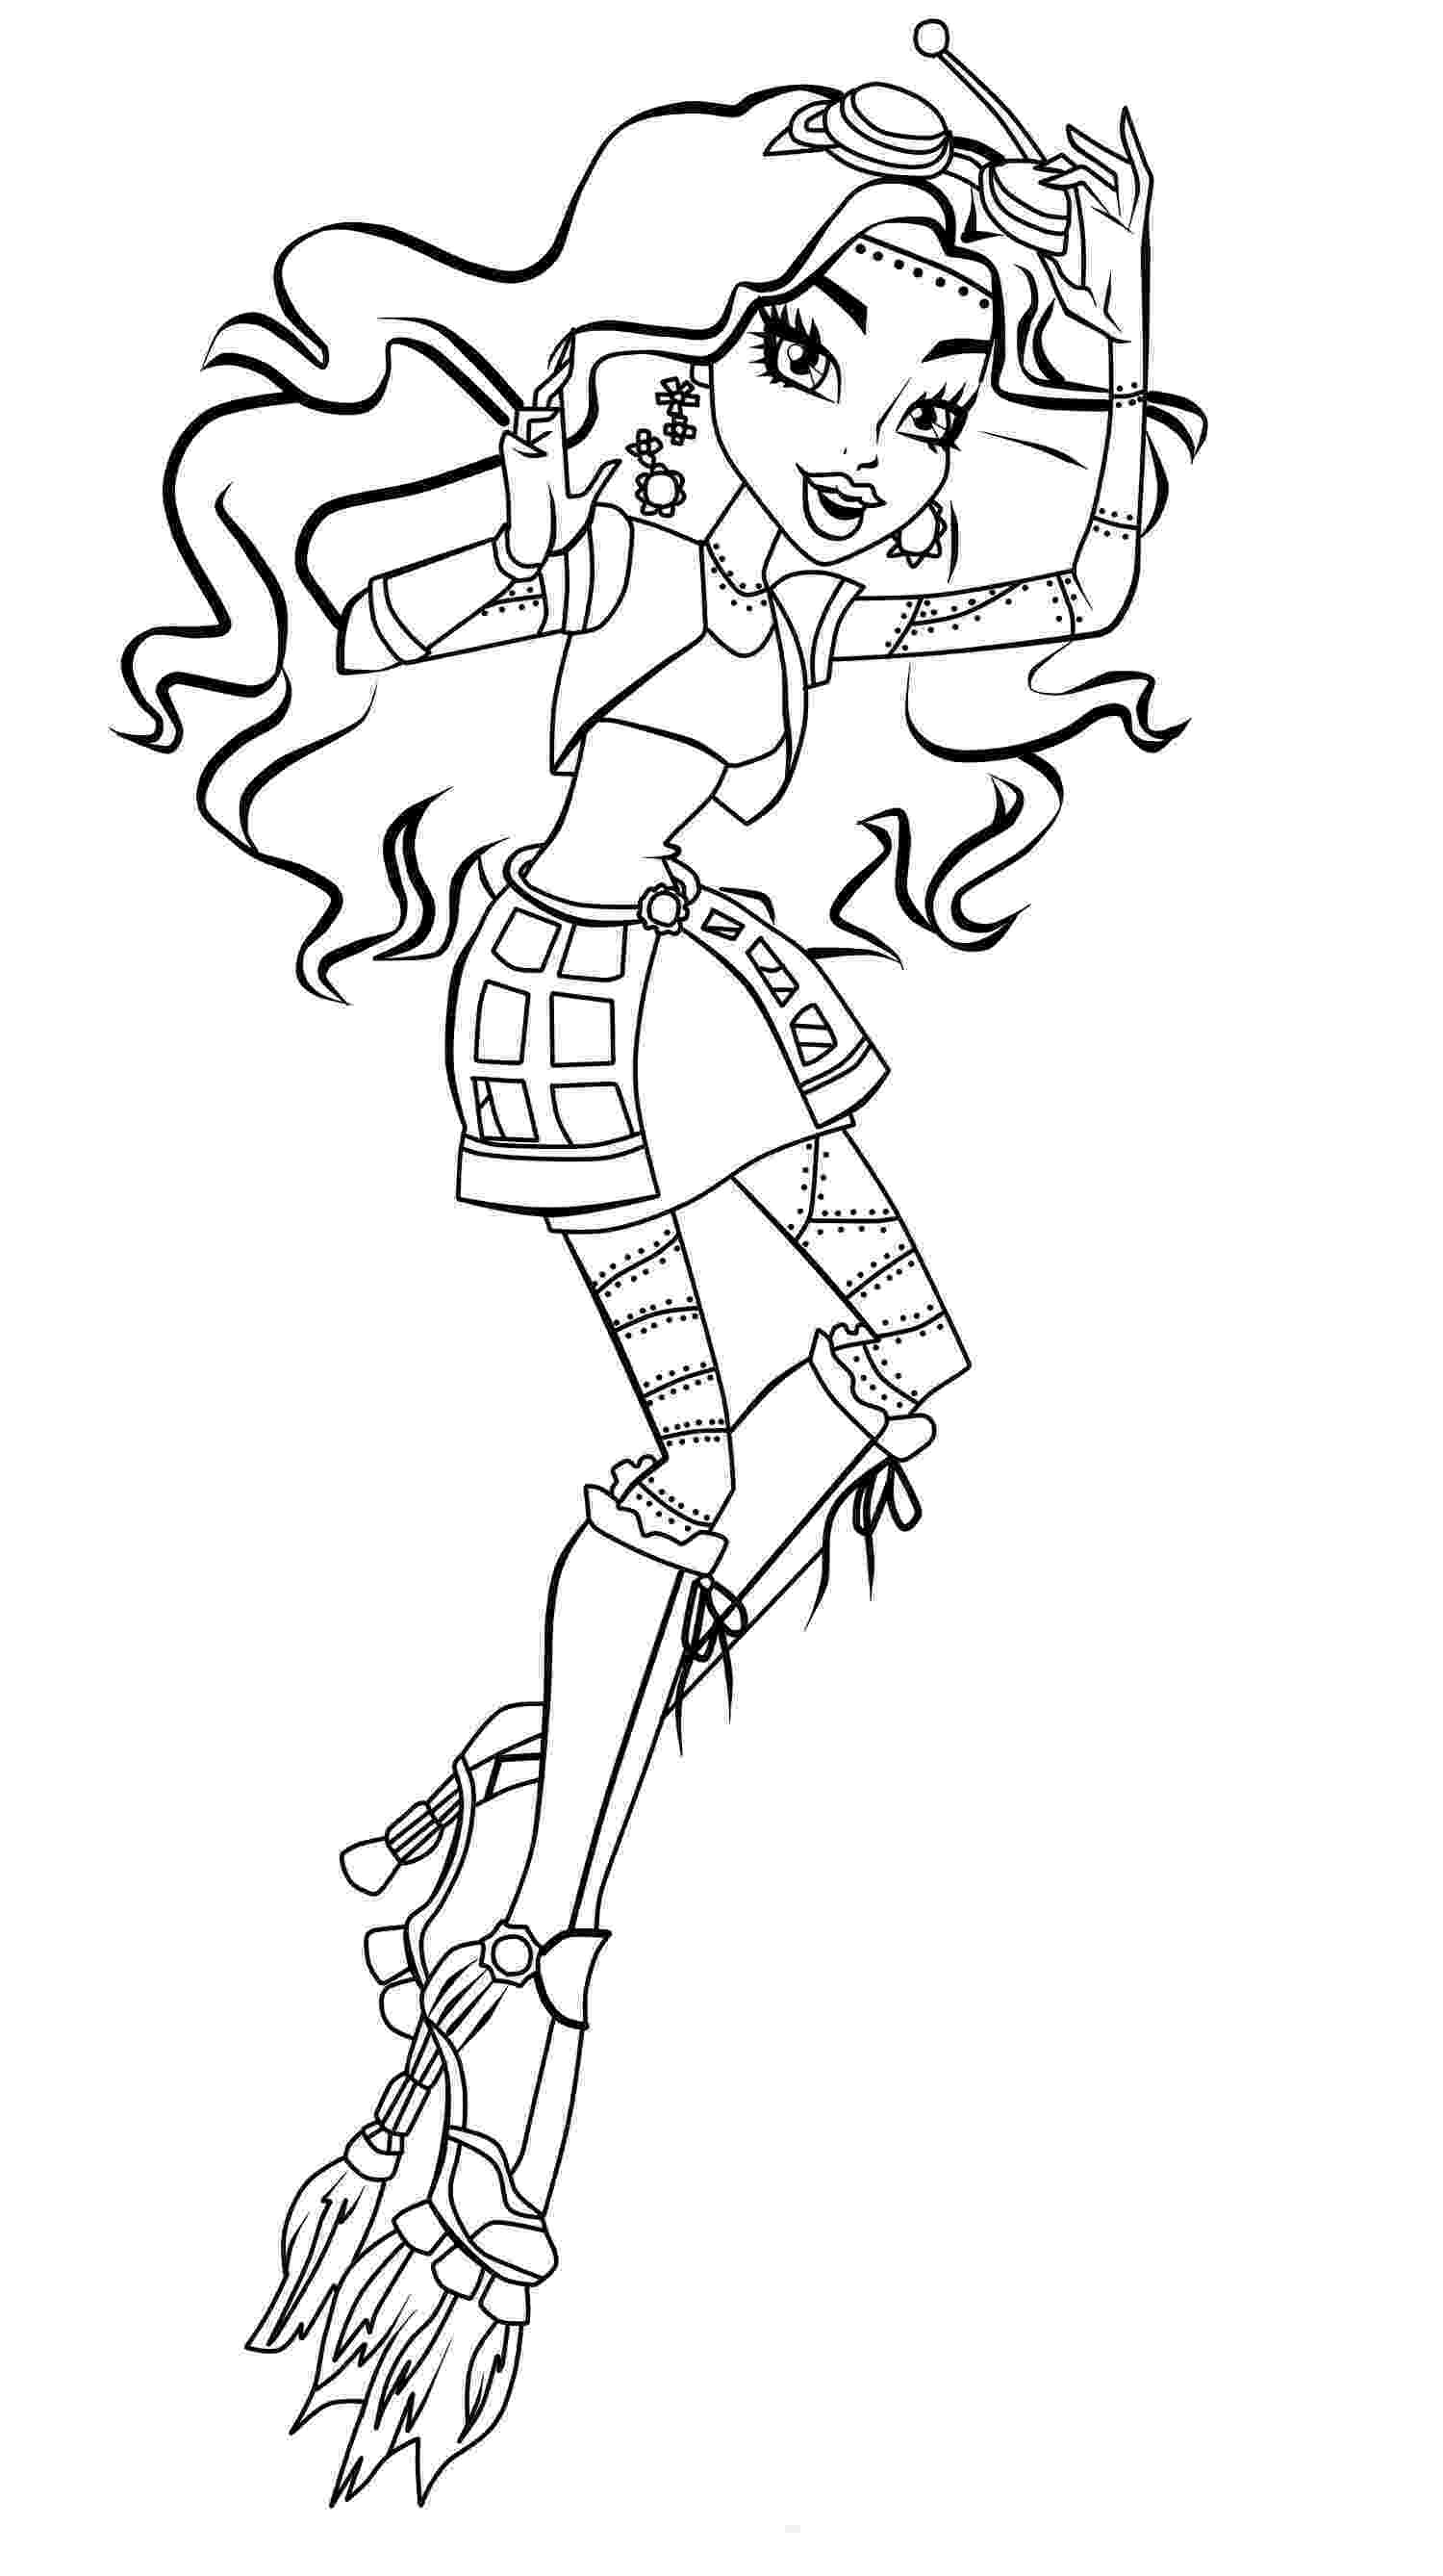 monster high pages to color monster high coloring pages getcoloringpagescom pages monster to color high